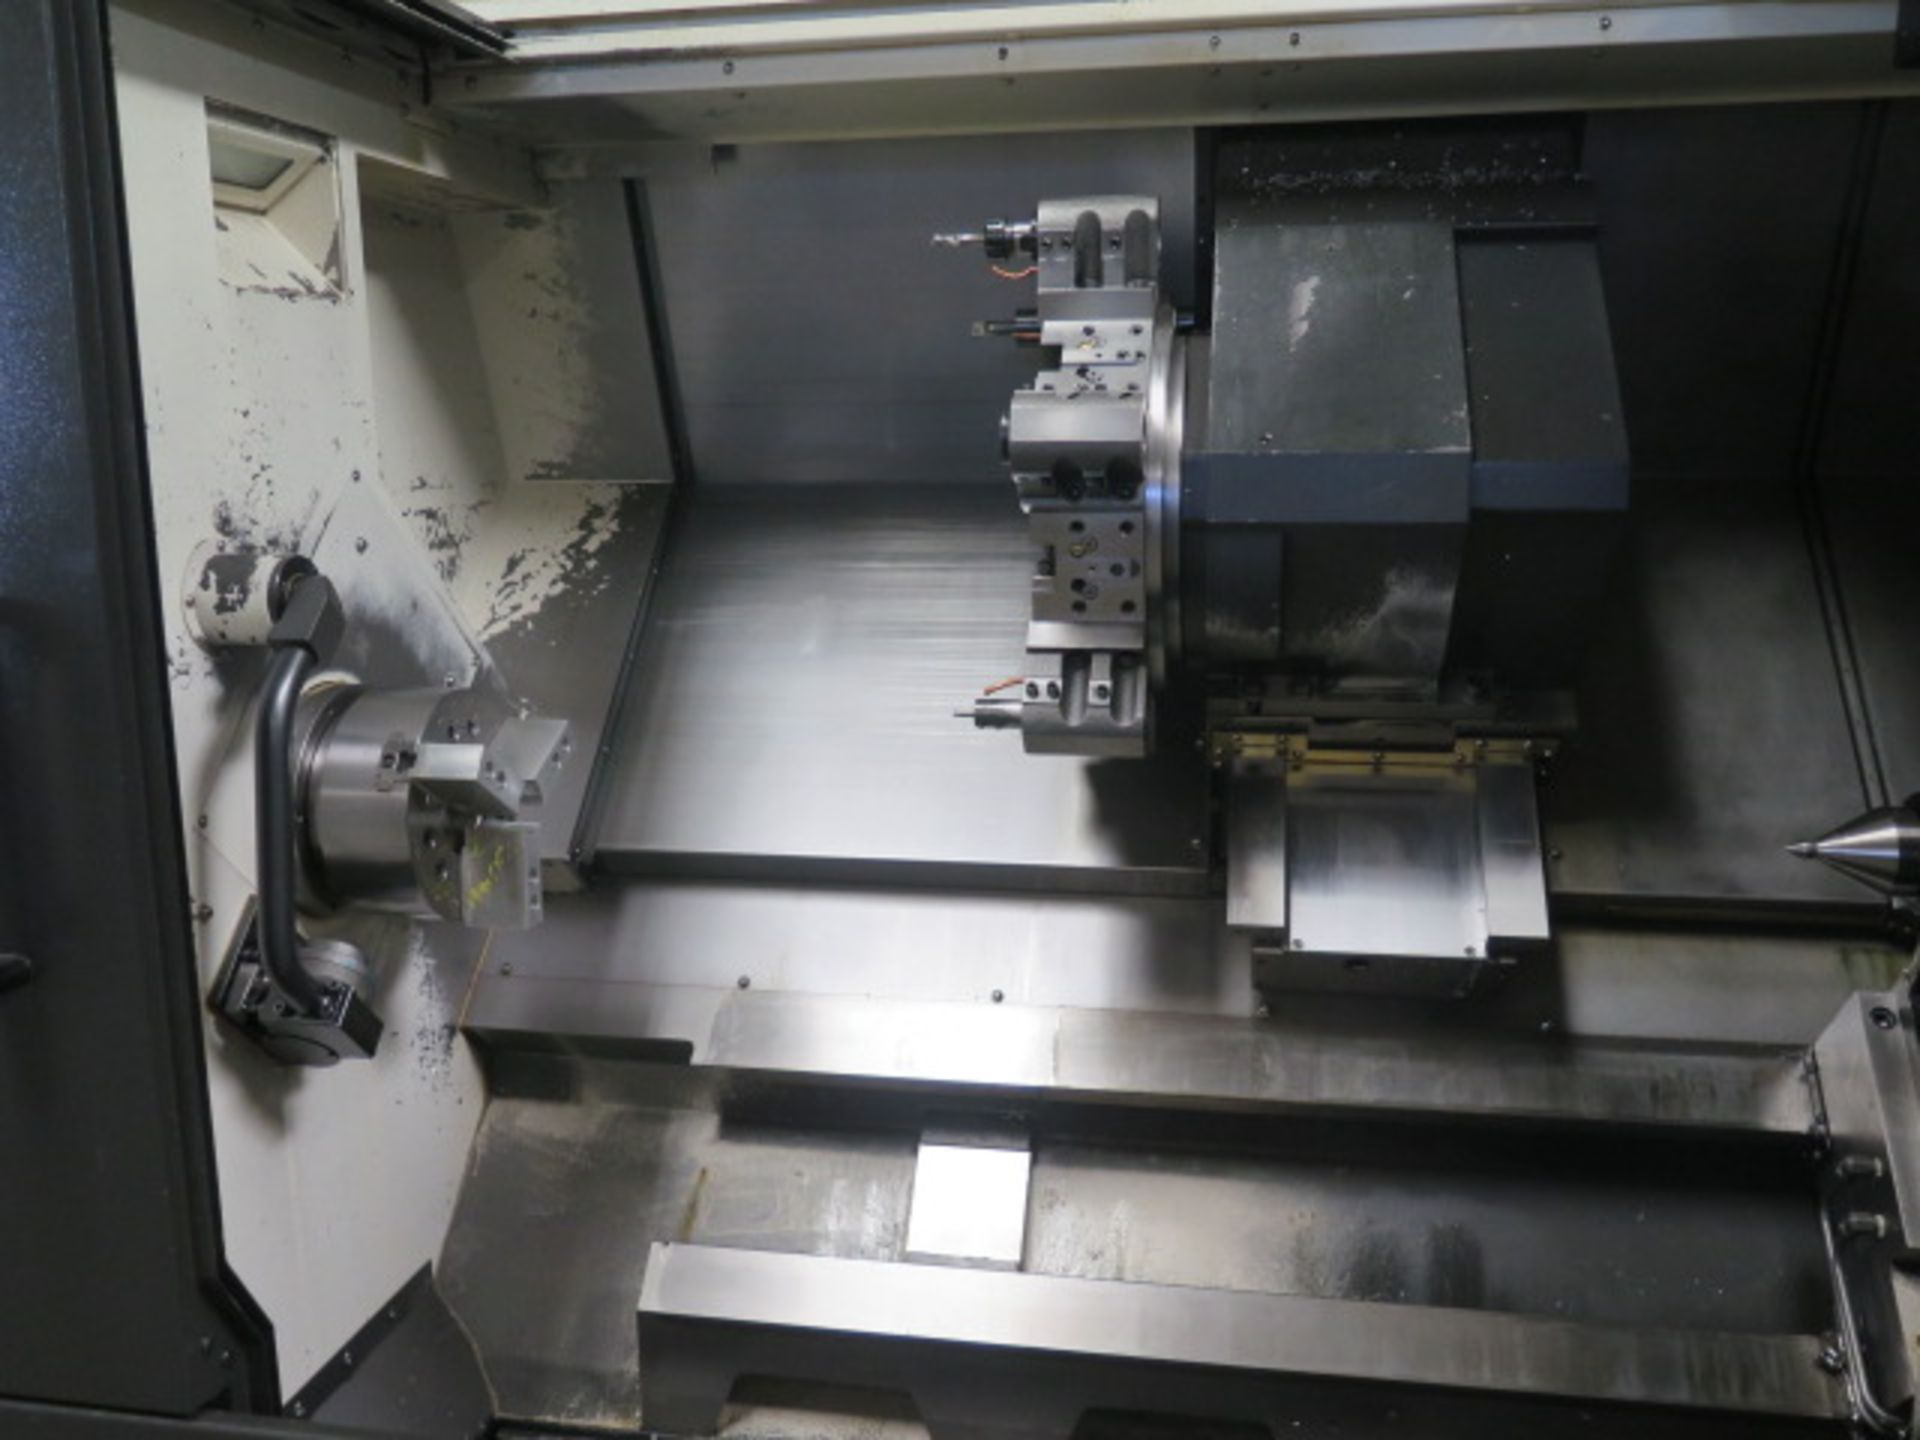 2016 Hyundai WIA L300LA CNC Turning Center s/n G3726-0083 w/ Fanuc i-Series Controls, SOLD AS IS - Image 7 of 20